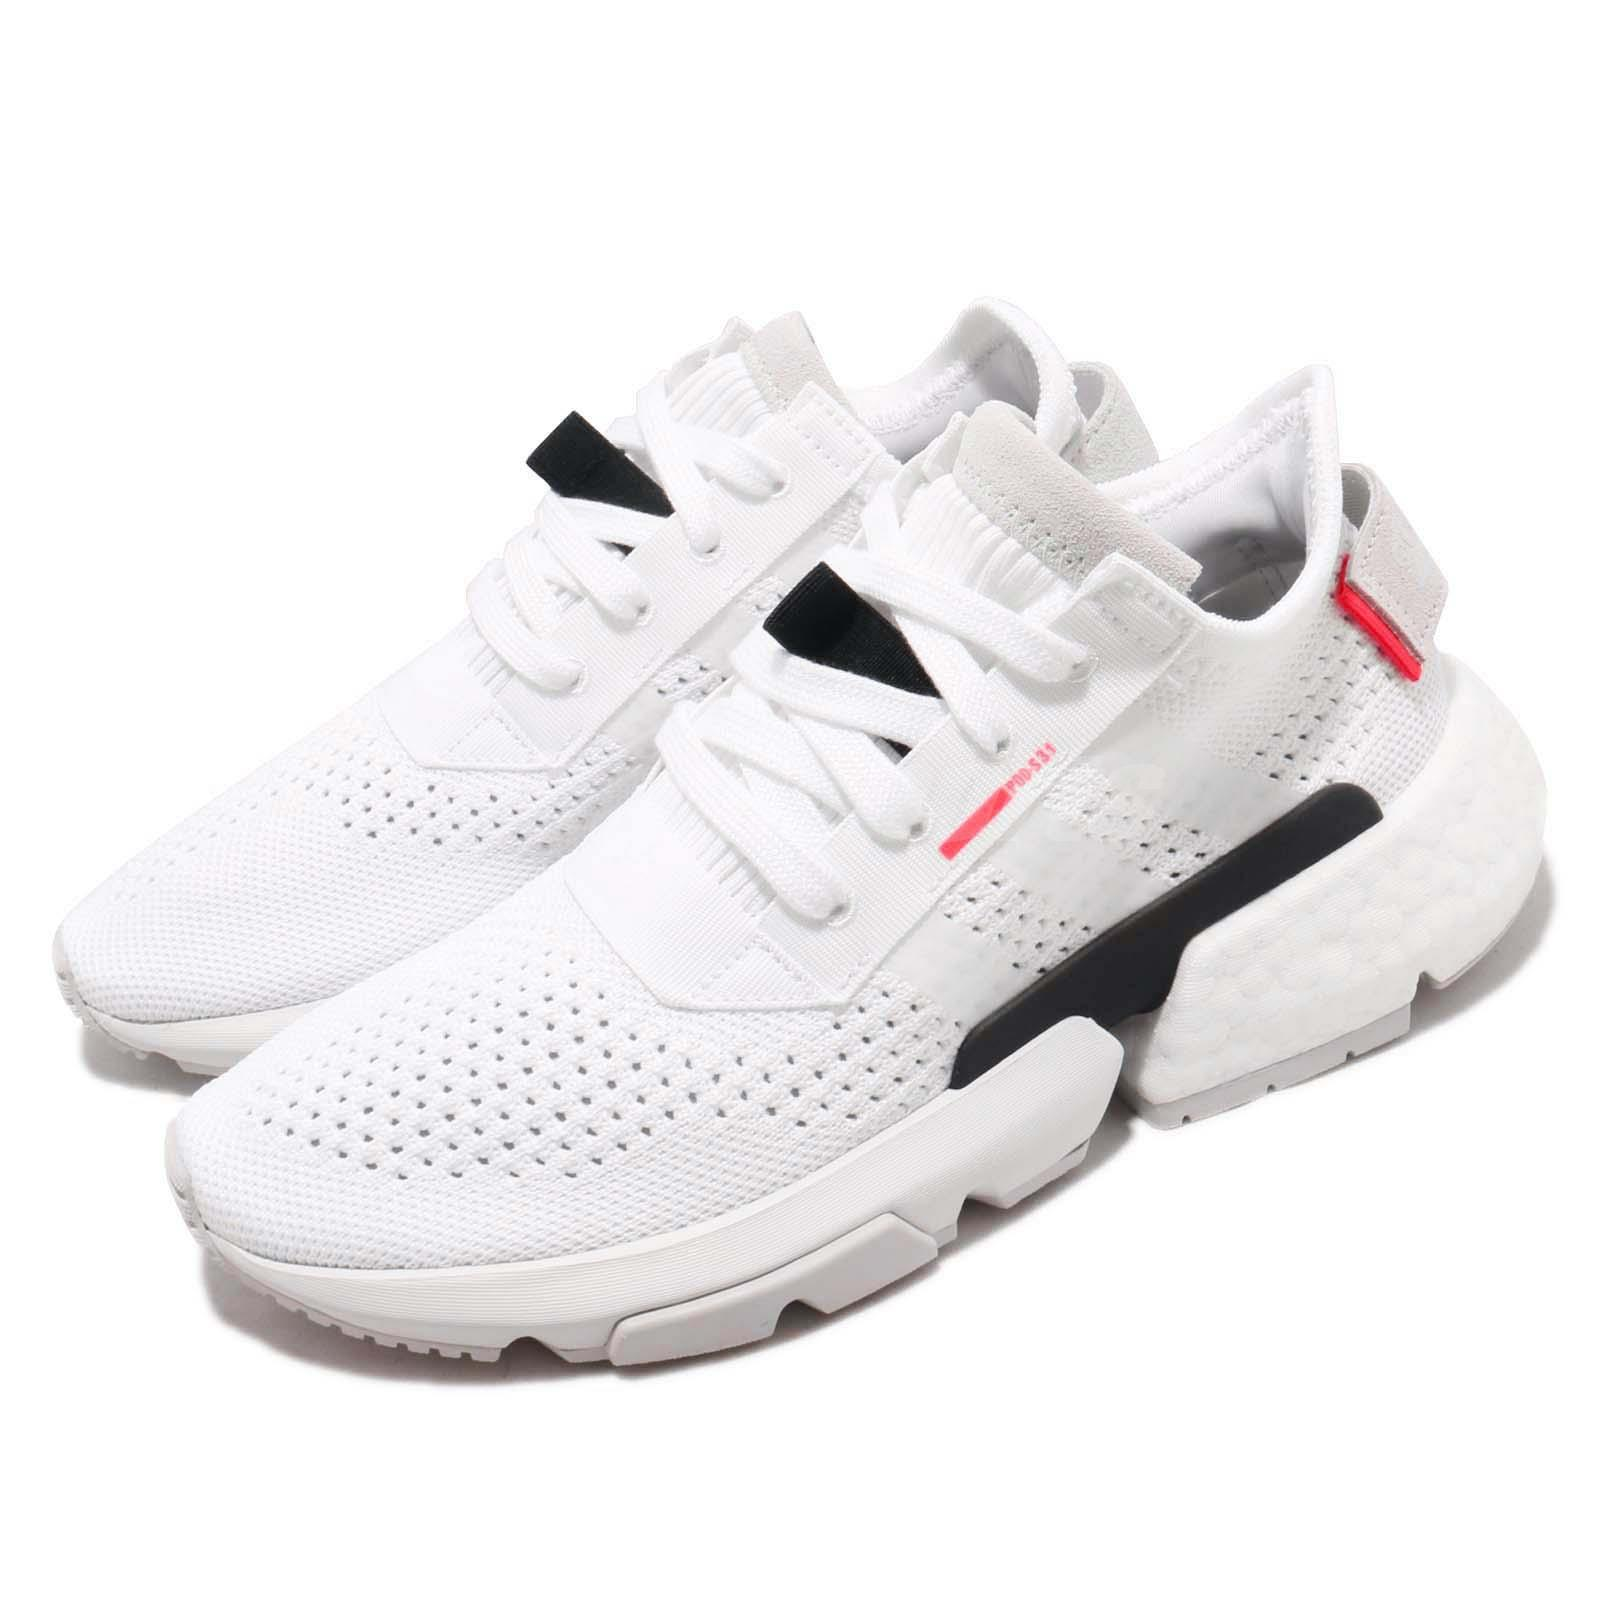 Details about adidas Originals Pod S3.1 W White Red Black Women Running Shoes Sneakers G27946